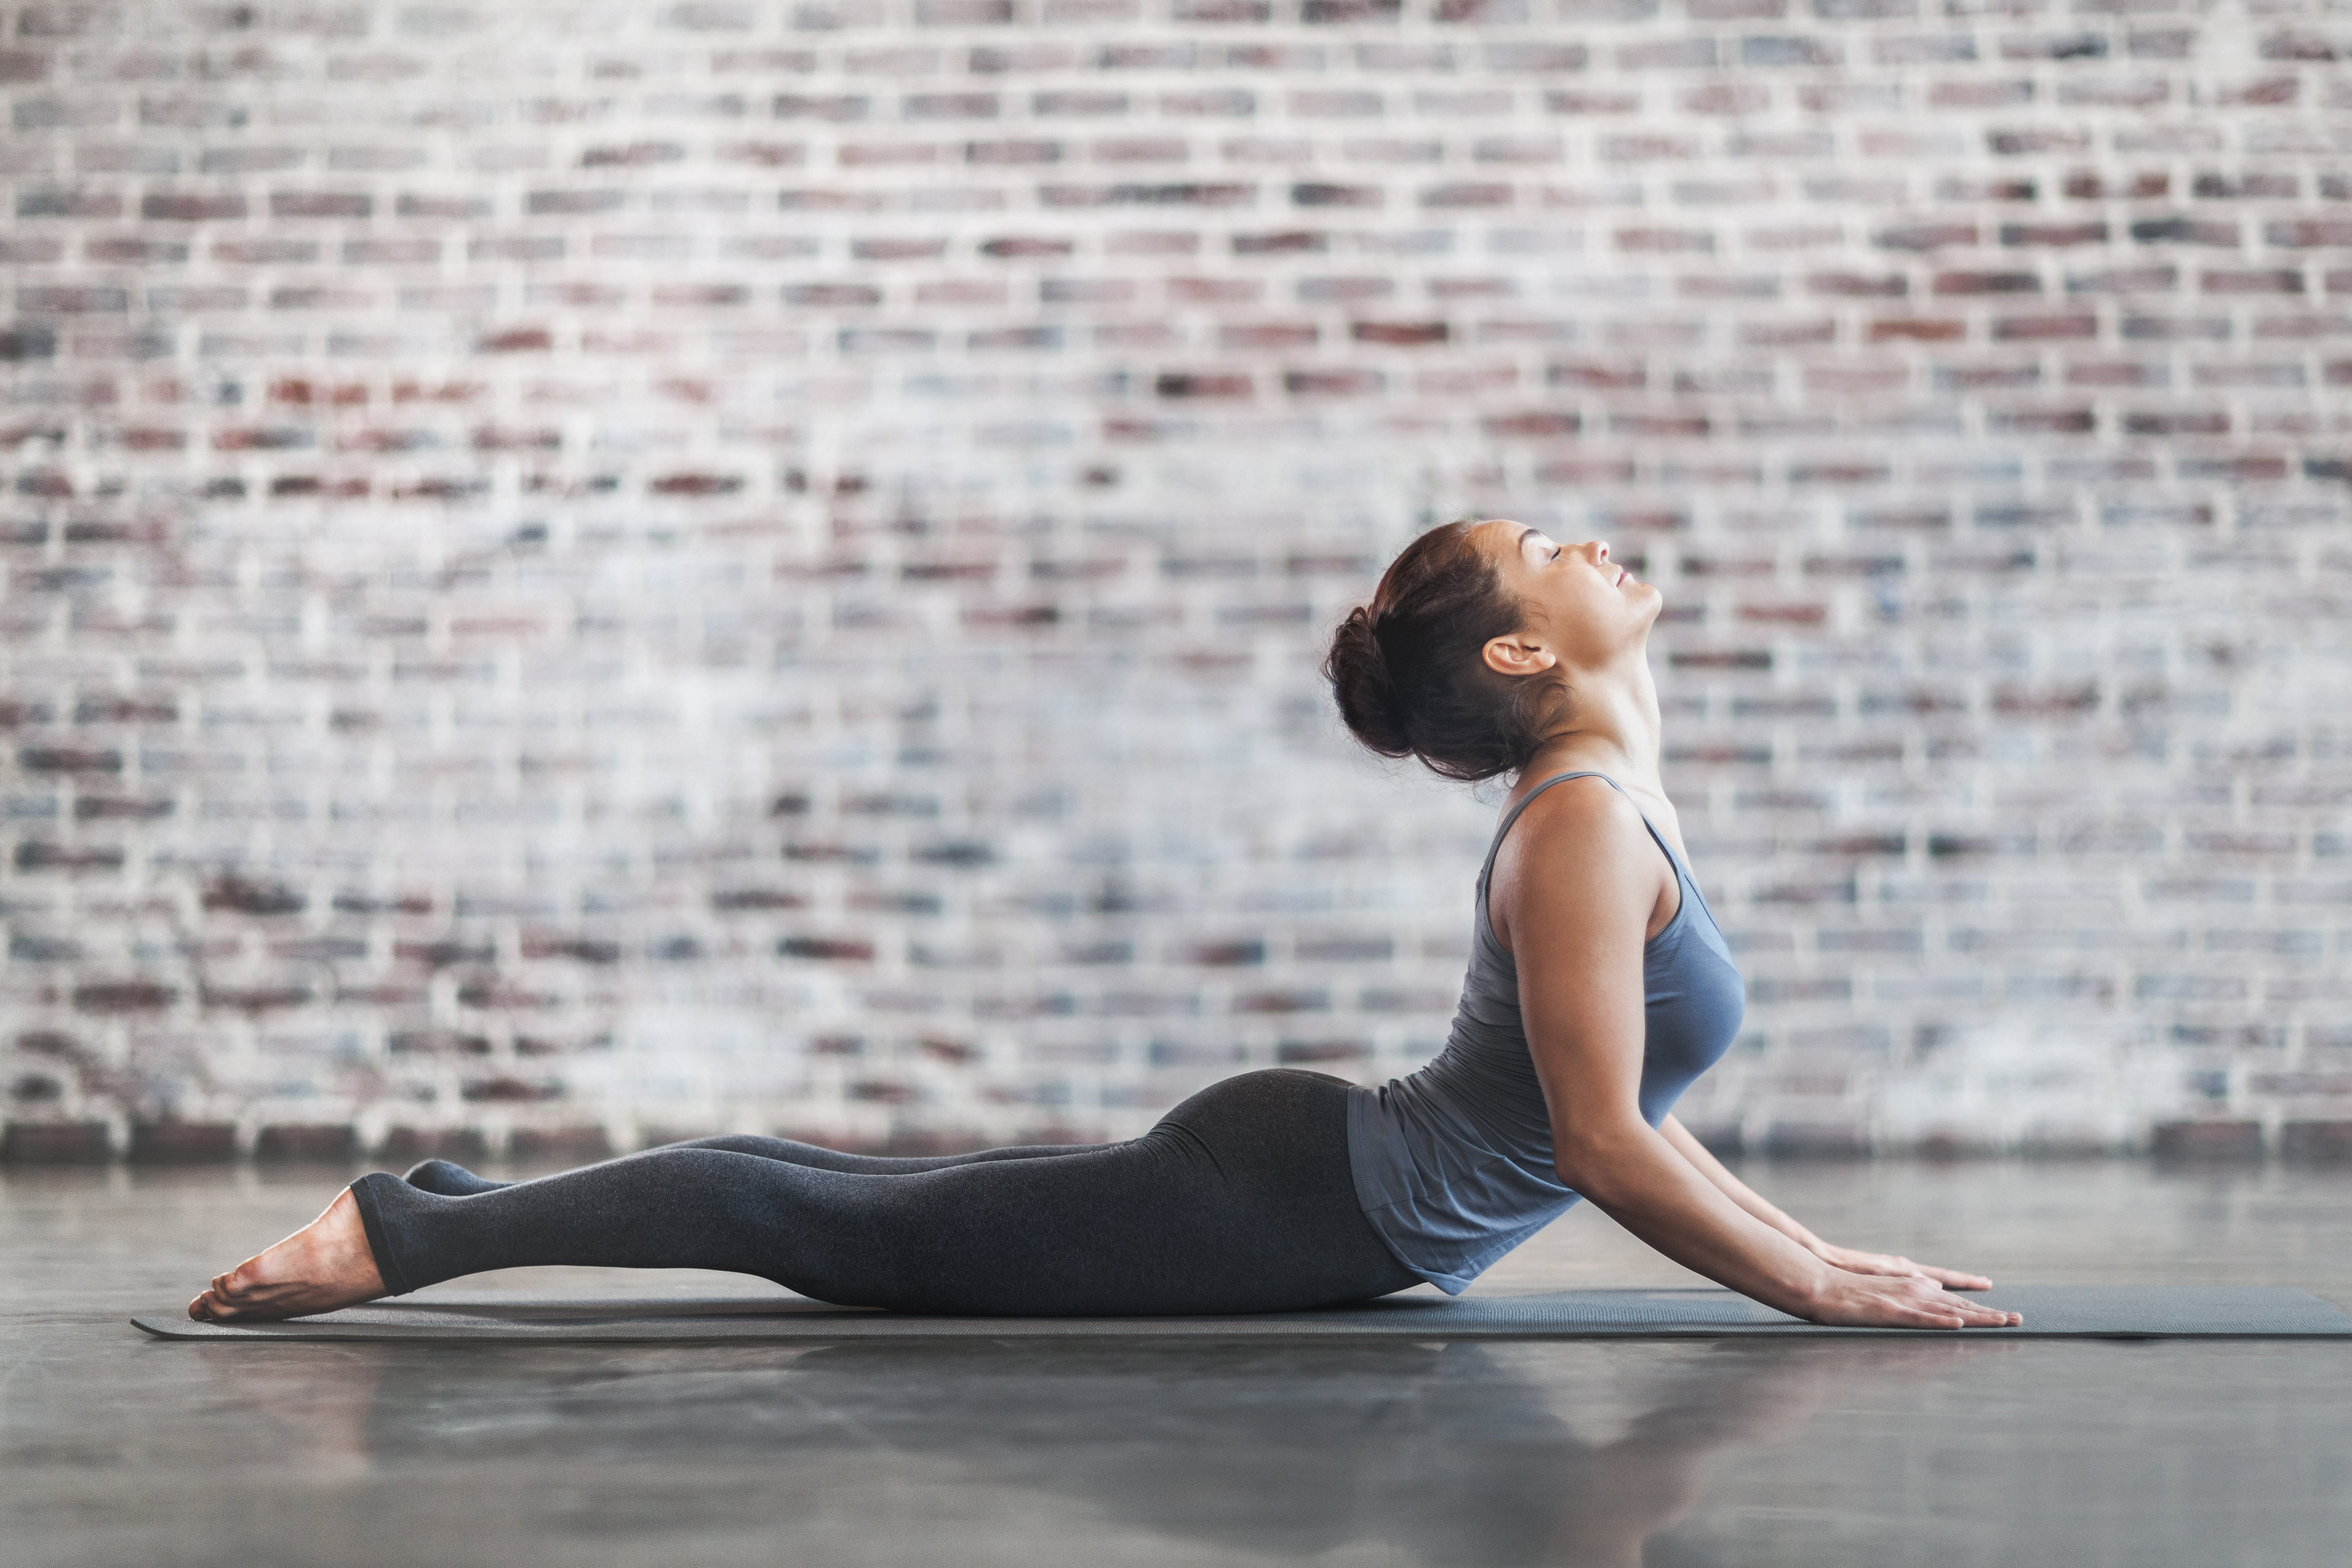 Why Is Stretching Painful?